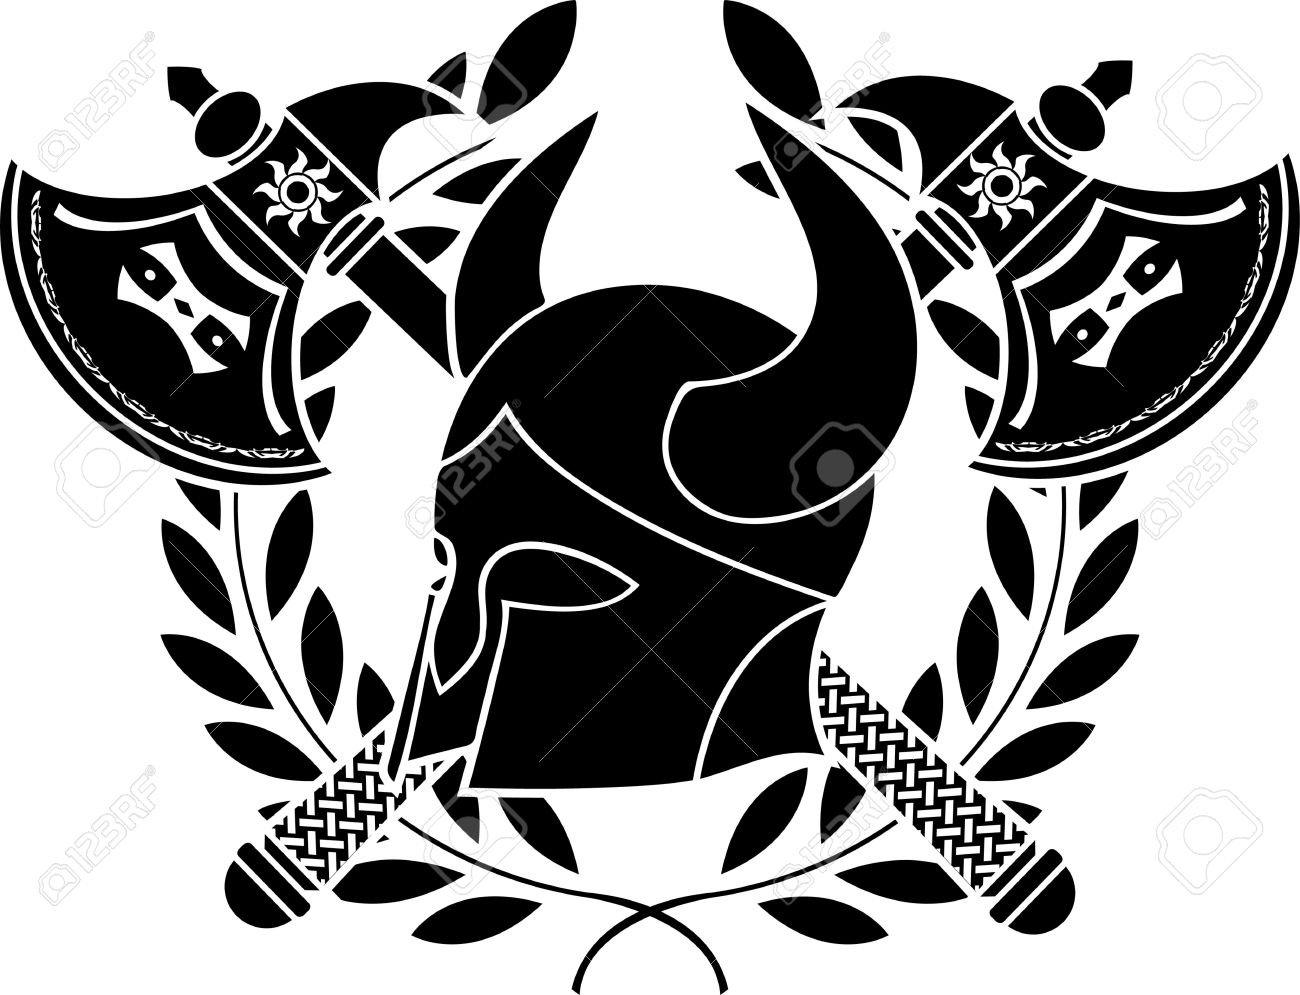 fantasy barbarian helmet with axes and laurel wreath  stencil  first variant  vector illustration Stock Vector - 12494826